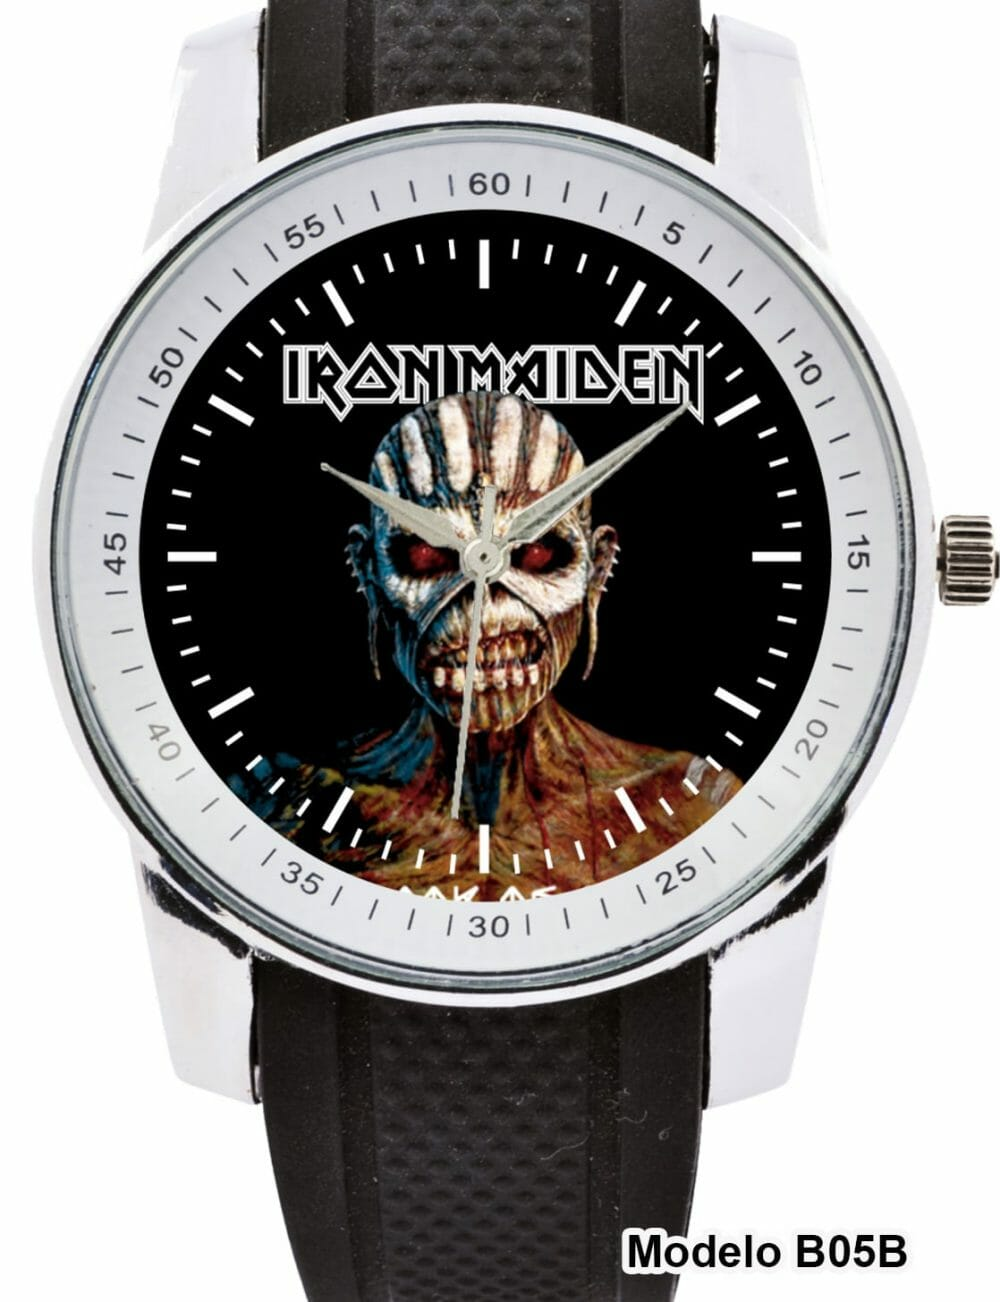 relpu-the-classic-branco-iron-maiden-book